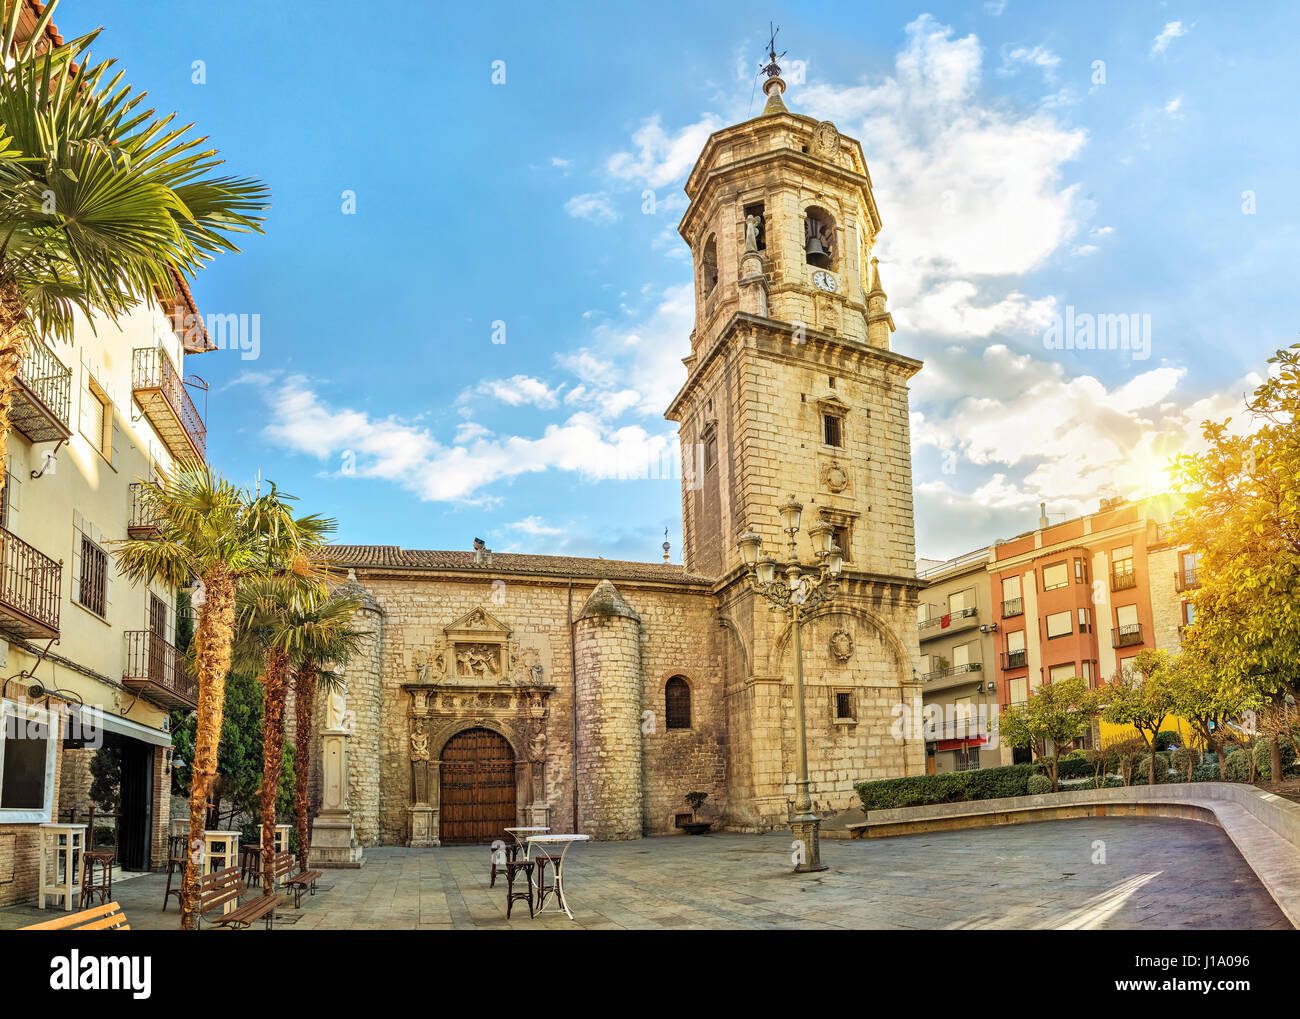 Basilica of San Ildefonso in Jaen, Andalusia, Spain - Stock Image